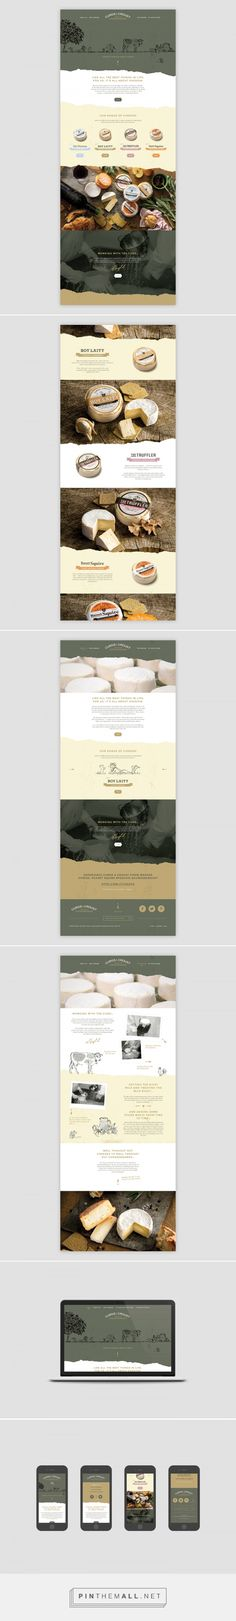 Curds & Croust Web Design by Friends Studio | Fivestar Branding Agency – Design and Branding Agency & Curated Inspiration Gallery  #web #webdesign #website #websitedesign #design #designinspiration